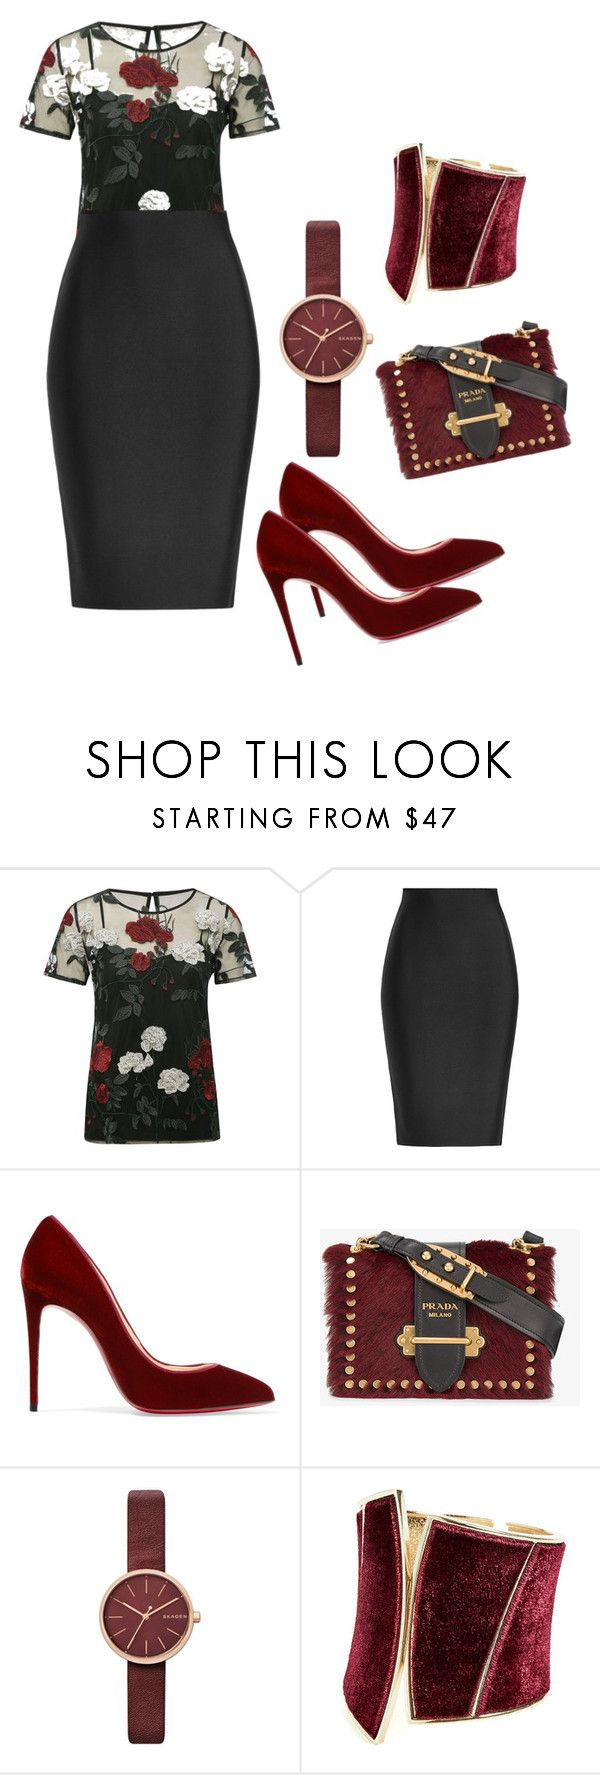 """Tendencia: rosas"" by yulita131 on Polyvore featuring M&Co, Roland Mouret, Christian Louboutin, Prada, Skagen and GUESS by Marciano"